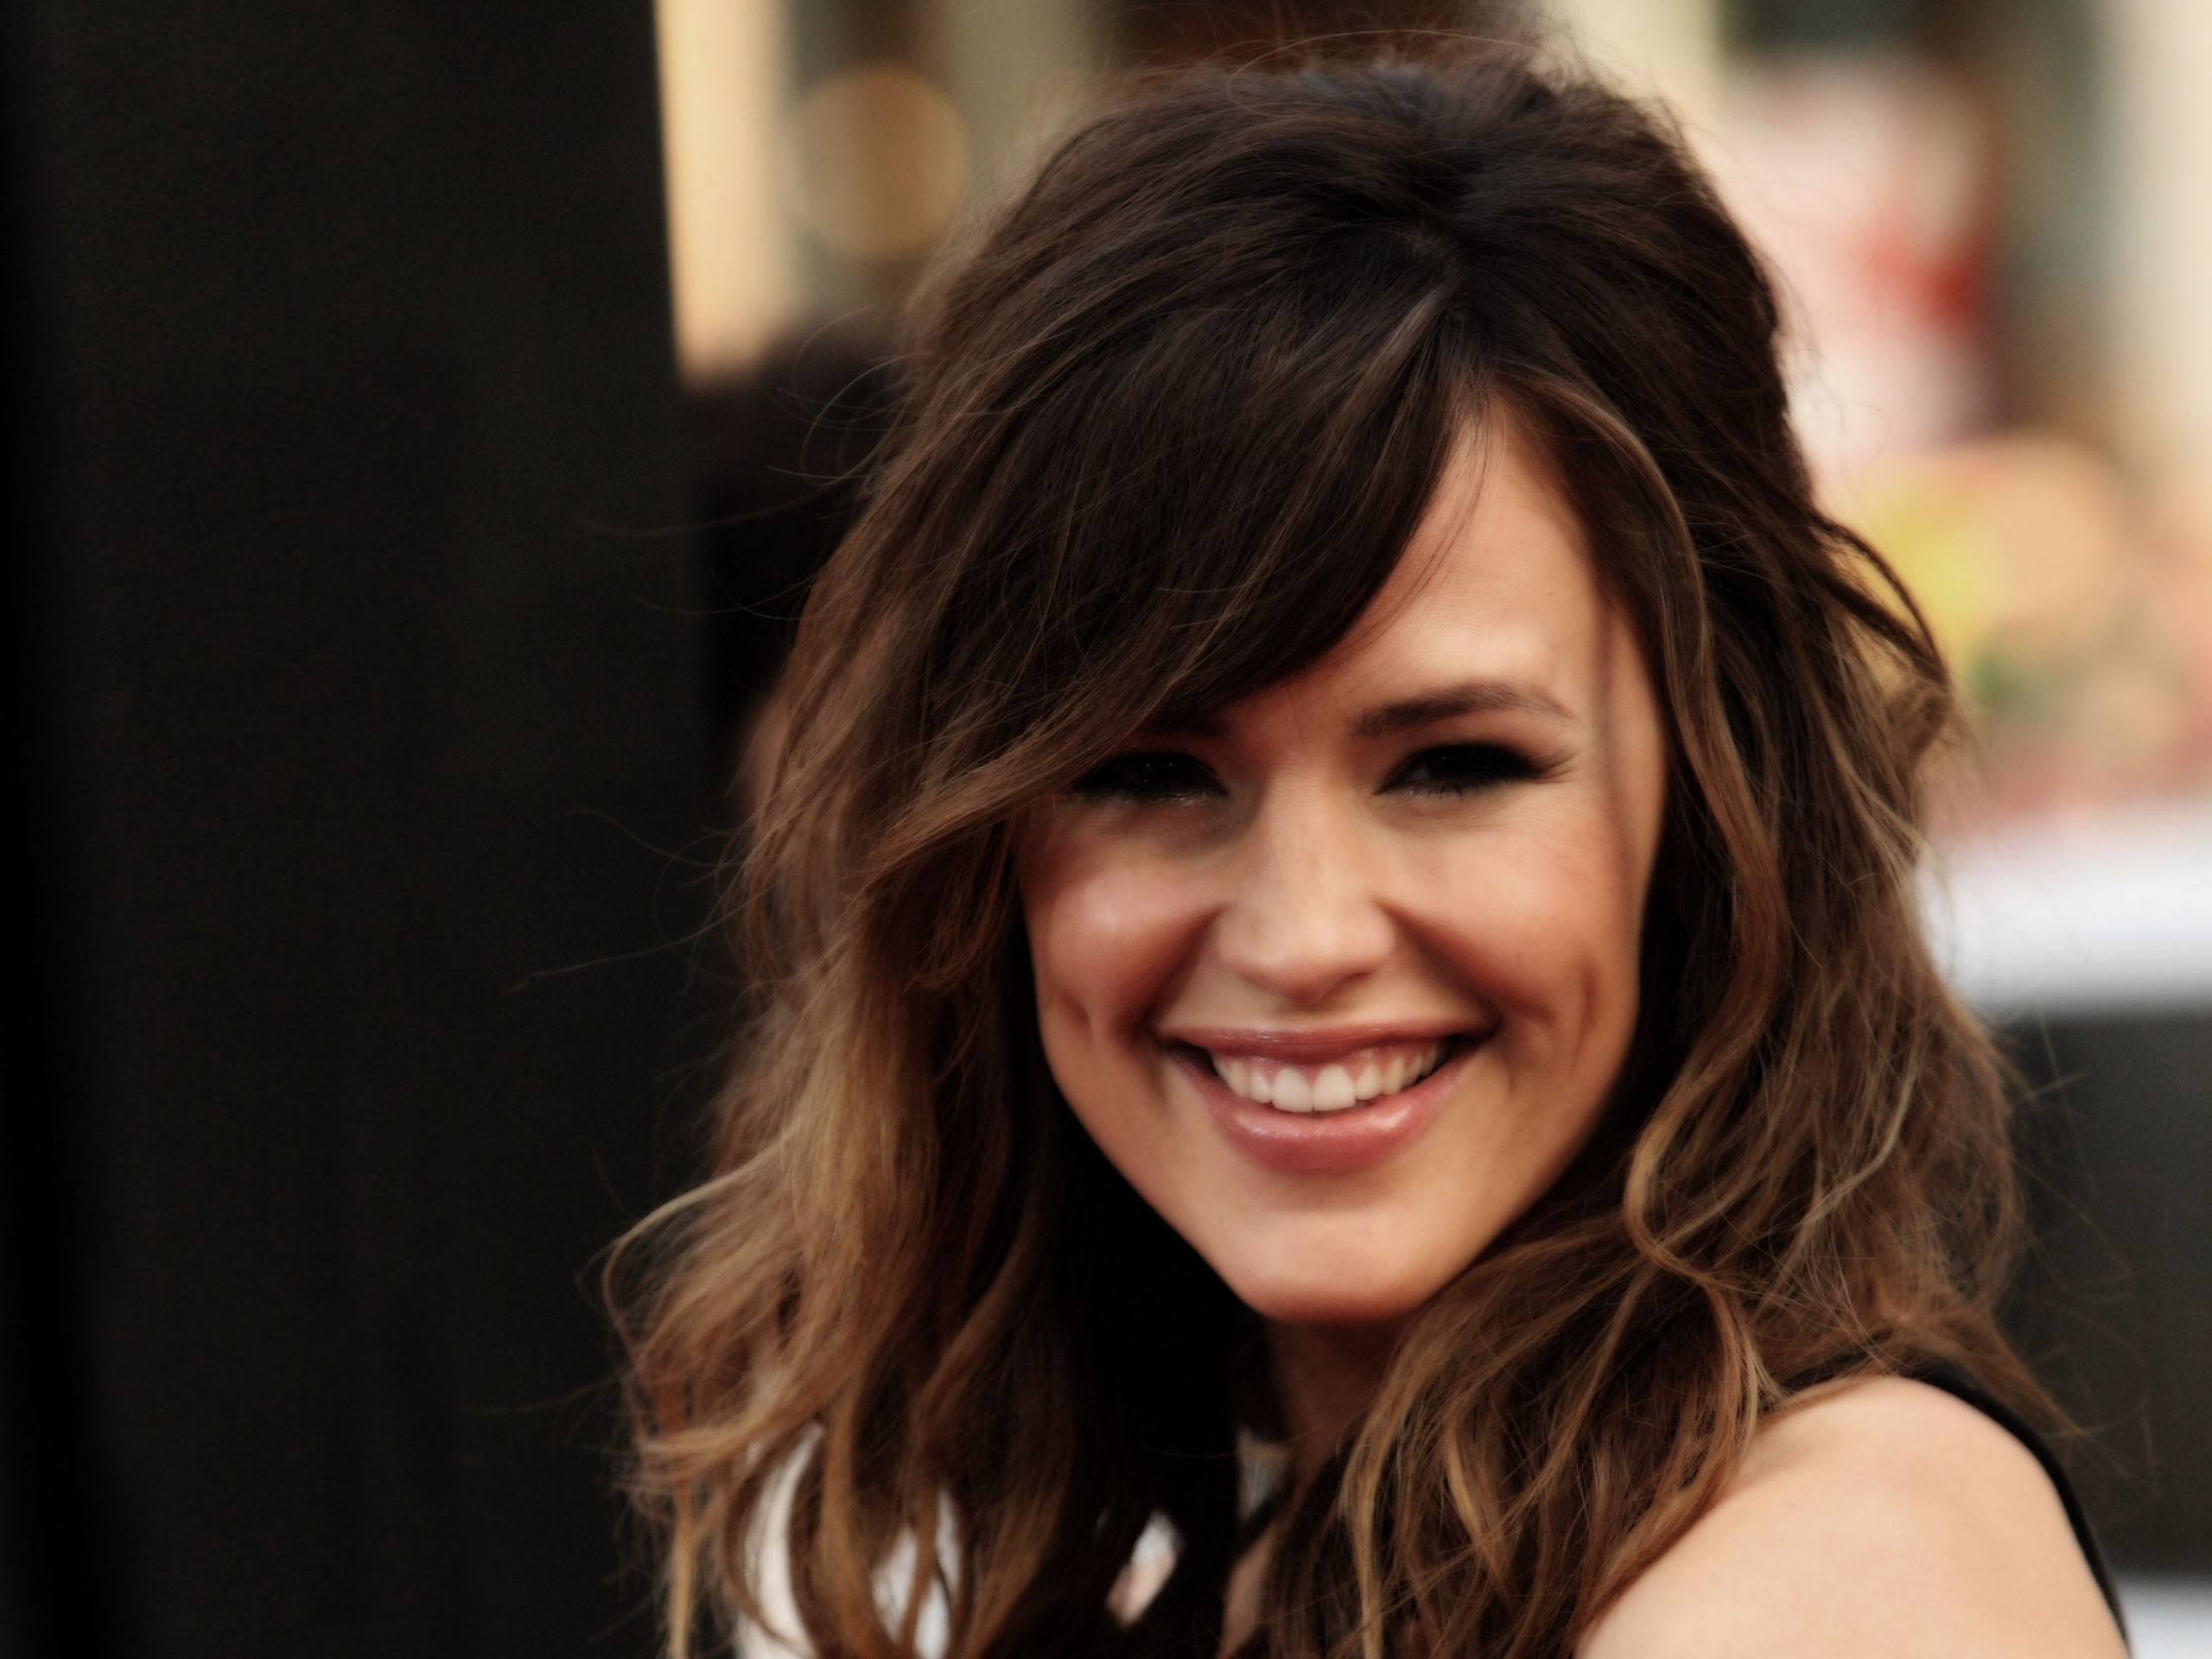 """HOLLYWOOD - APRIL 27: Actress Jennifer Garner arrives at the premiere of Warner Bros. """"Ghosts Of Girlfriends Past"""" held at Grauman's Chinese Theatre on April 27, 2009 in Hollywood, California. (Photo by Jason Merritt/Getty Images) *** Local Caption *** Jennifer Garner"""